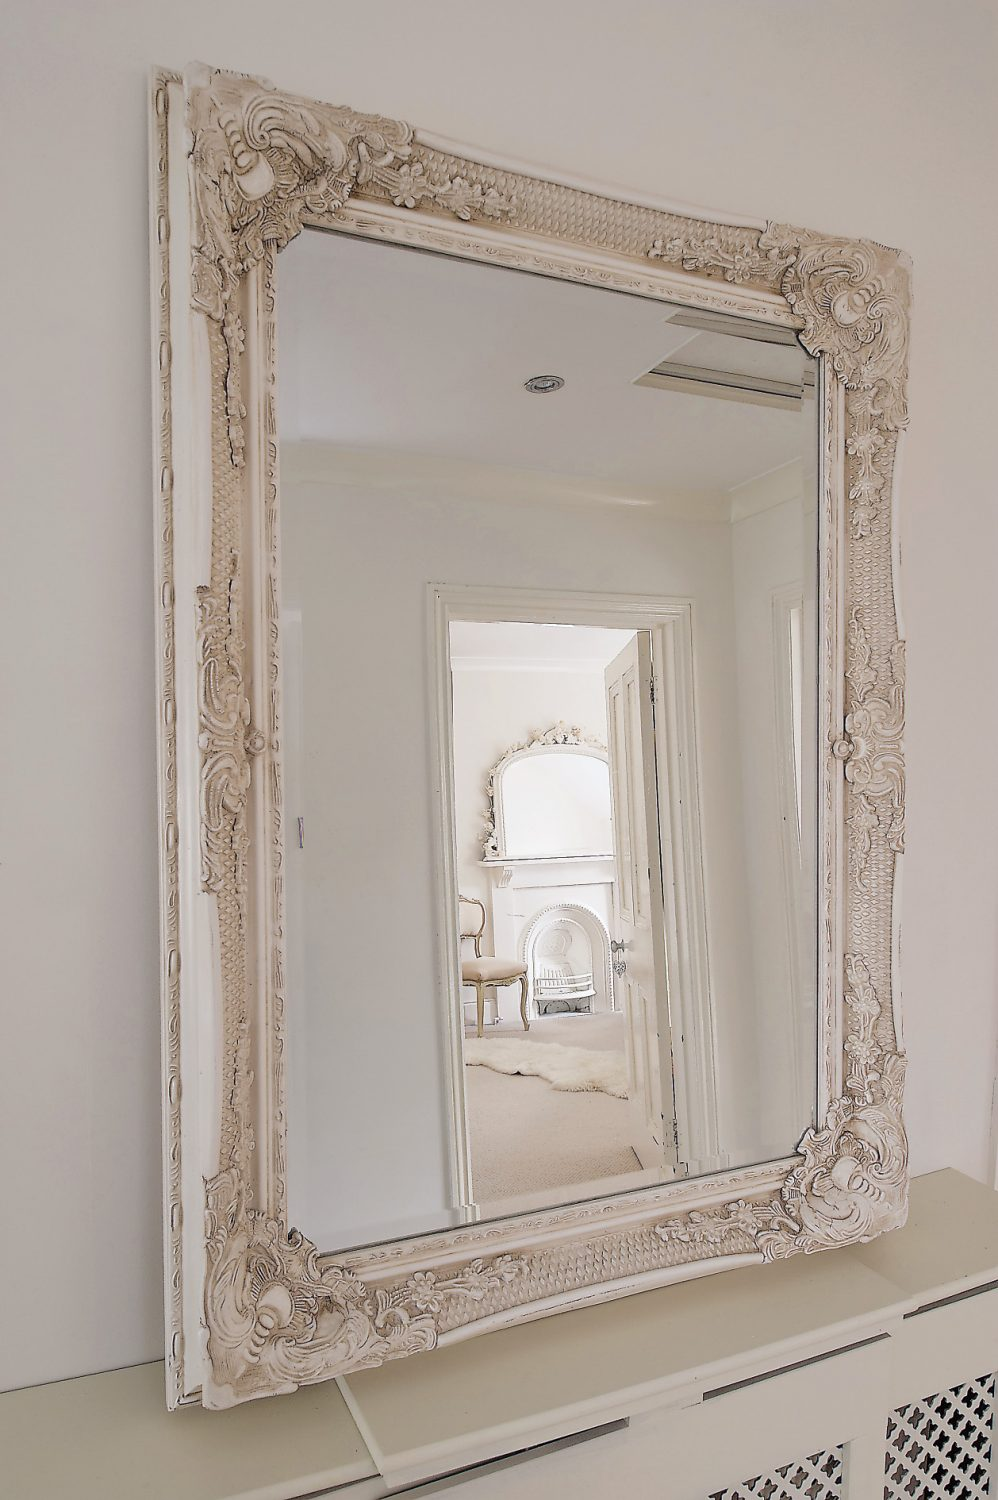 In front of the fireplace there is a dainty Rococo style bedroom chair upholstered in shell pink silk, antique lace camisoles hang from the door of one armoire and a garland of voile roses entwined around the frame of an overmantel mirror all add to the sense of luxurious indulgence